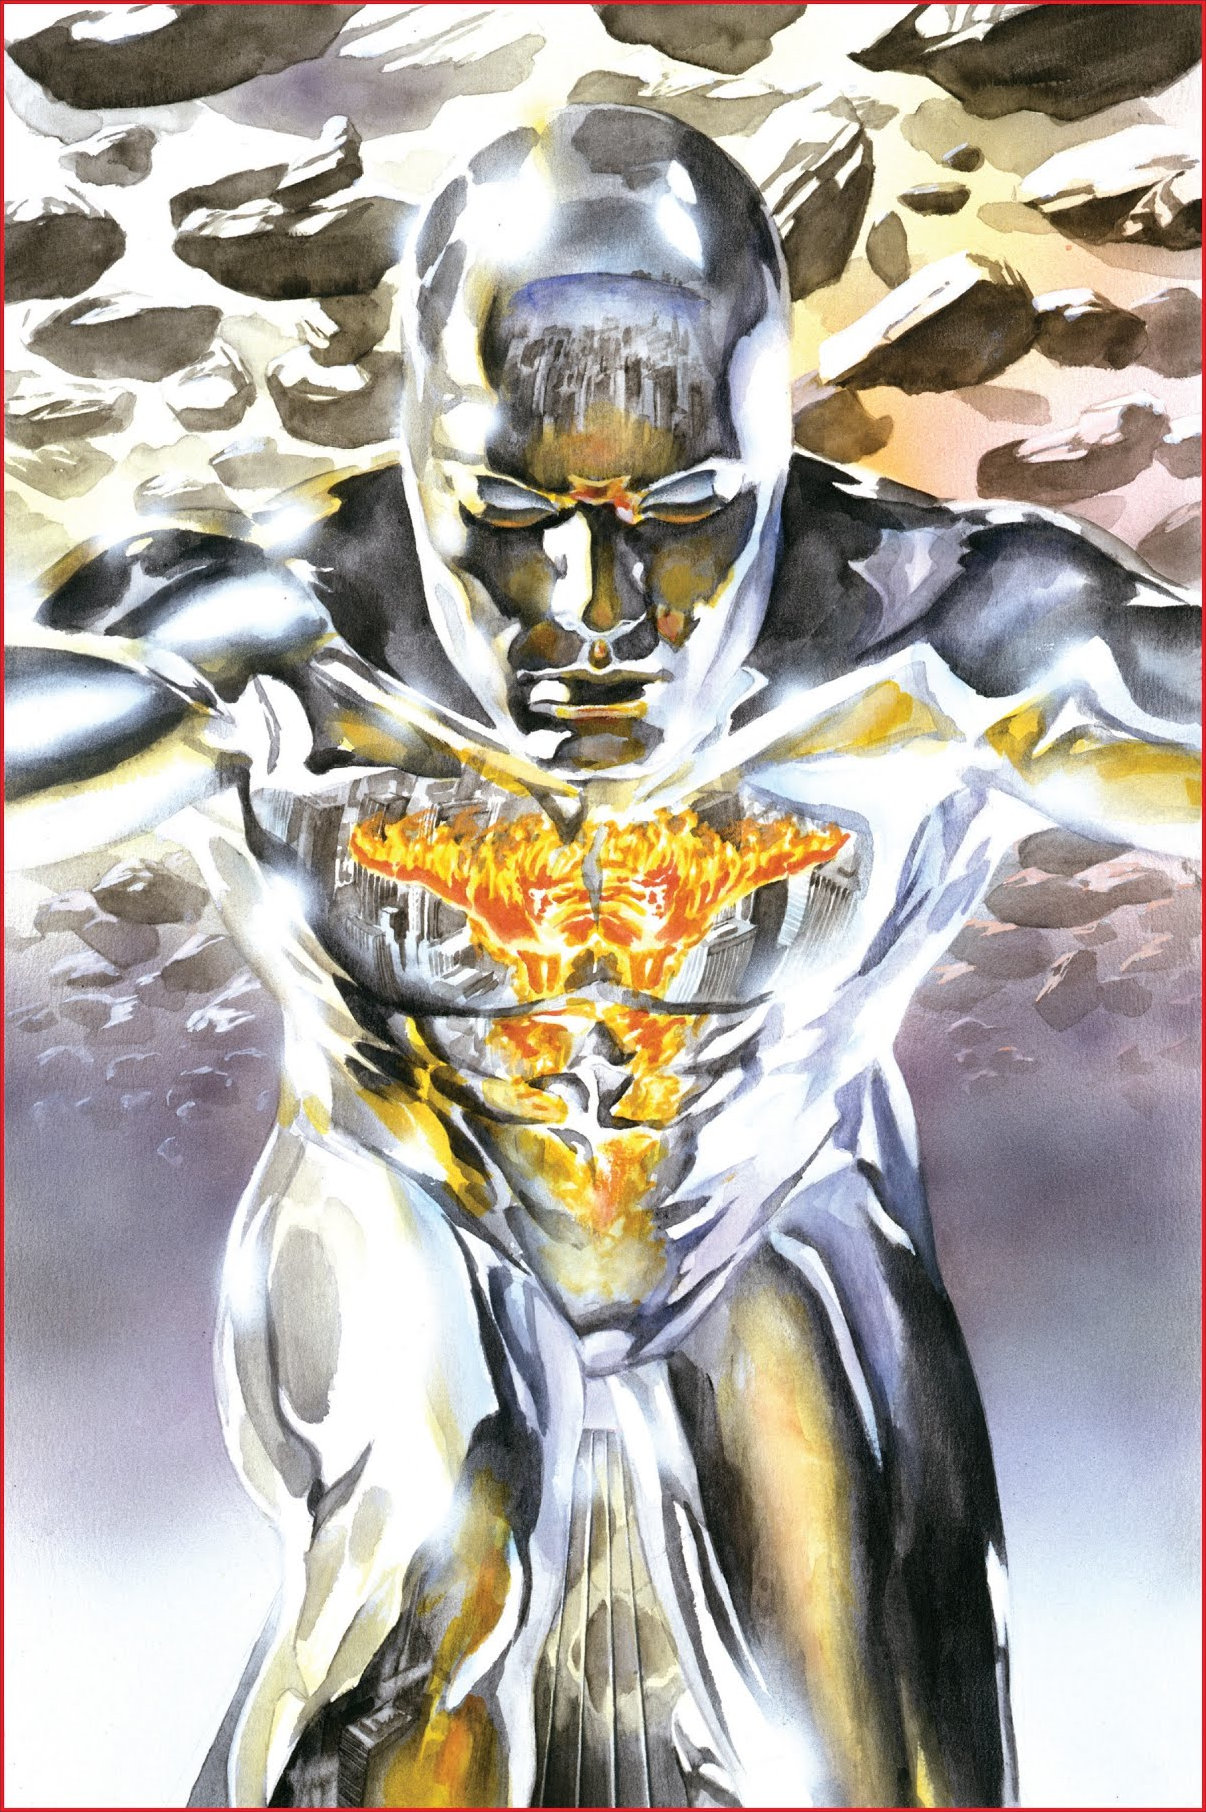 Marvels (1994) #3, cover by Alex Ross.